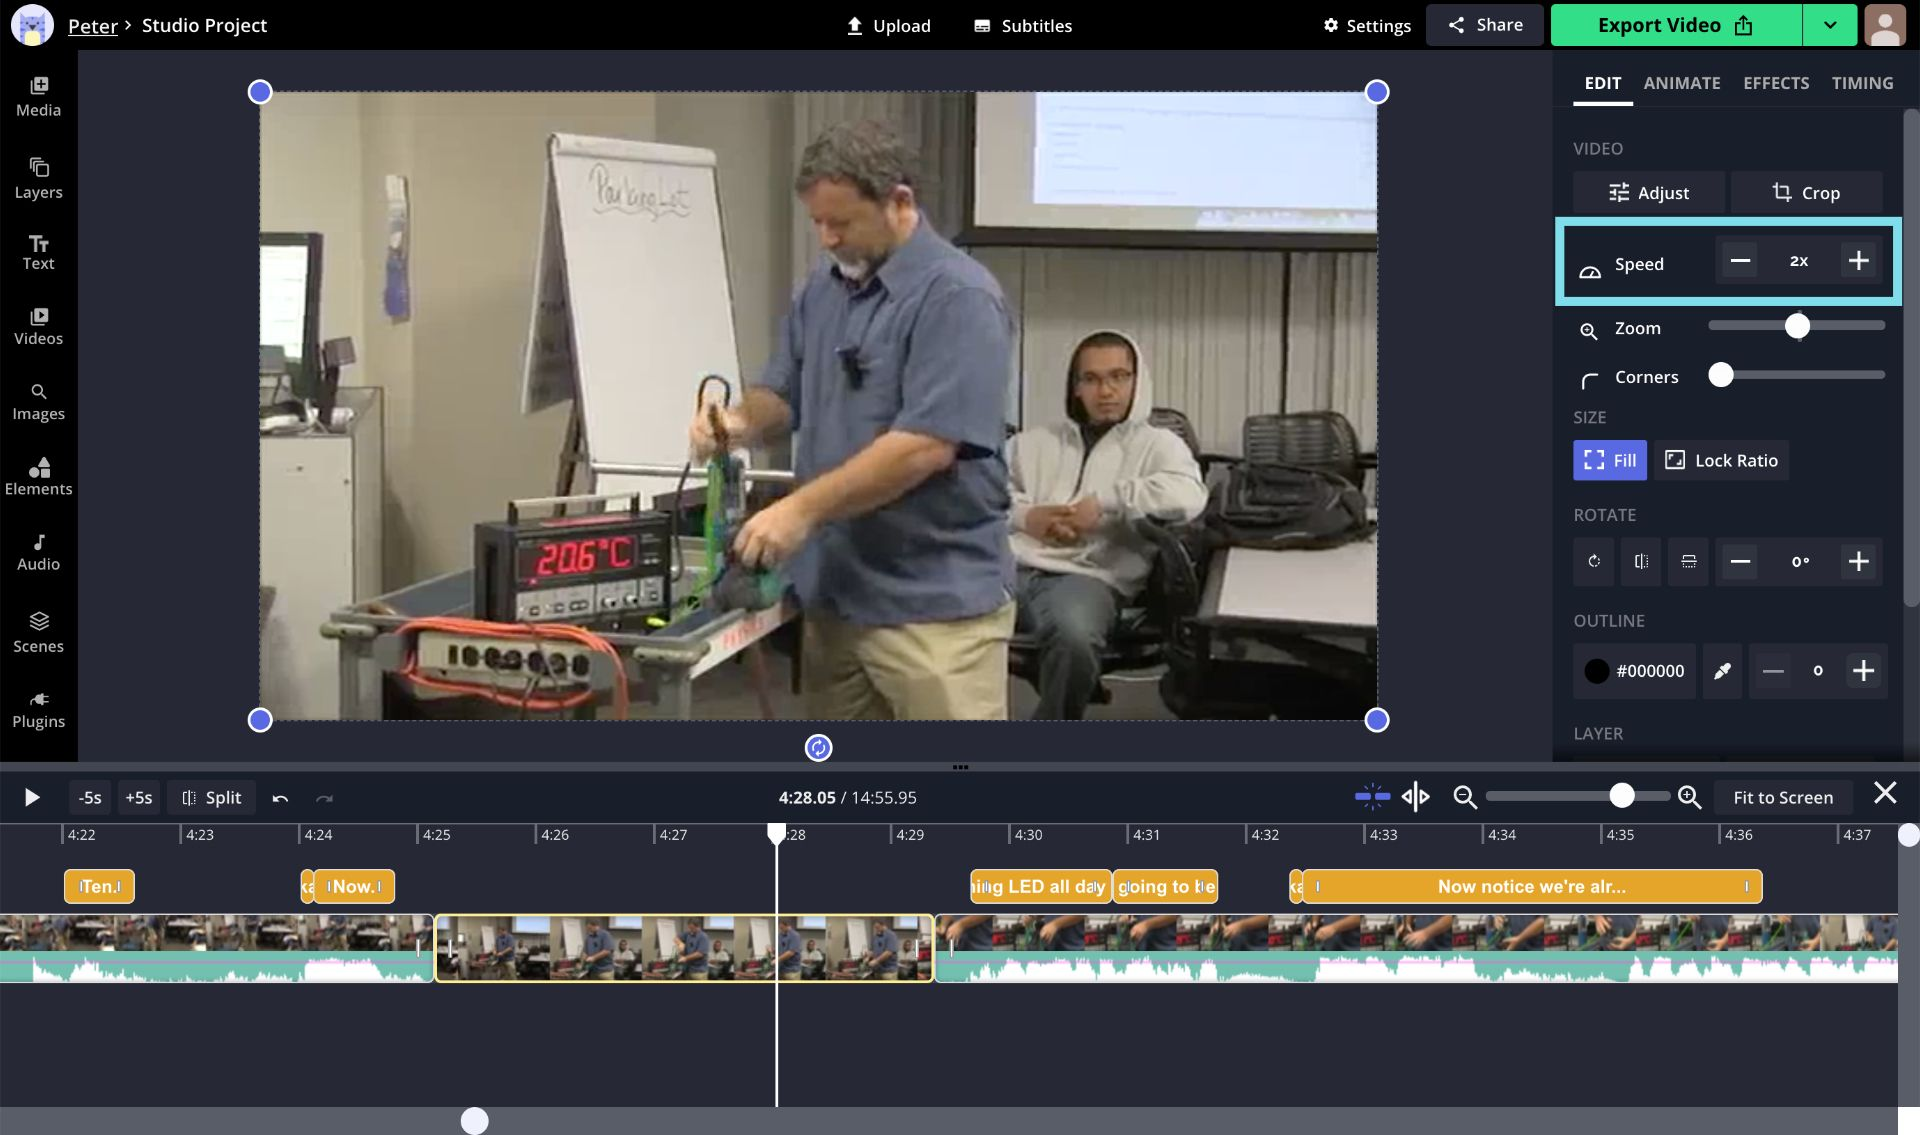 A screenshot of a section of a lecture being sped up in the Kapwing Studio.